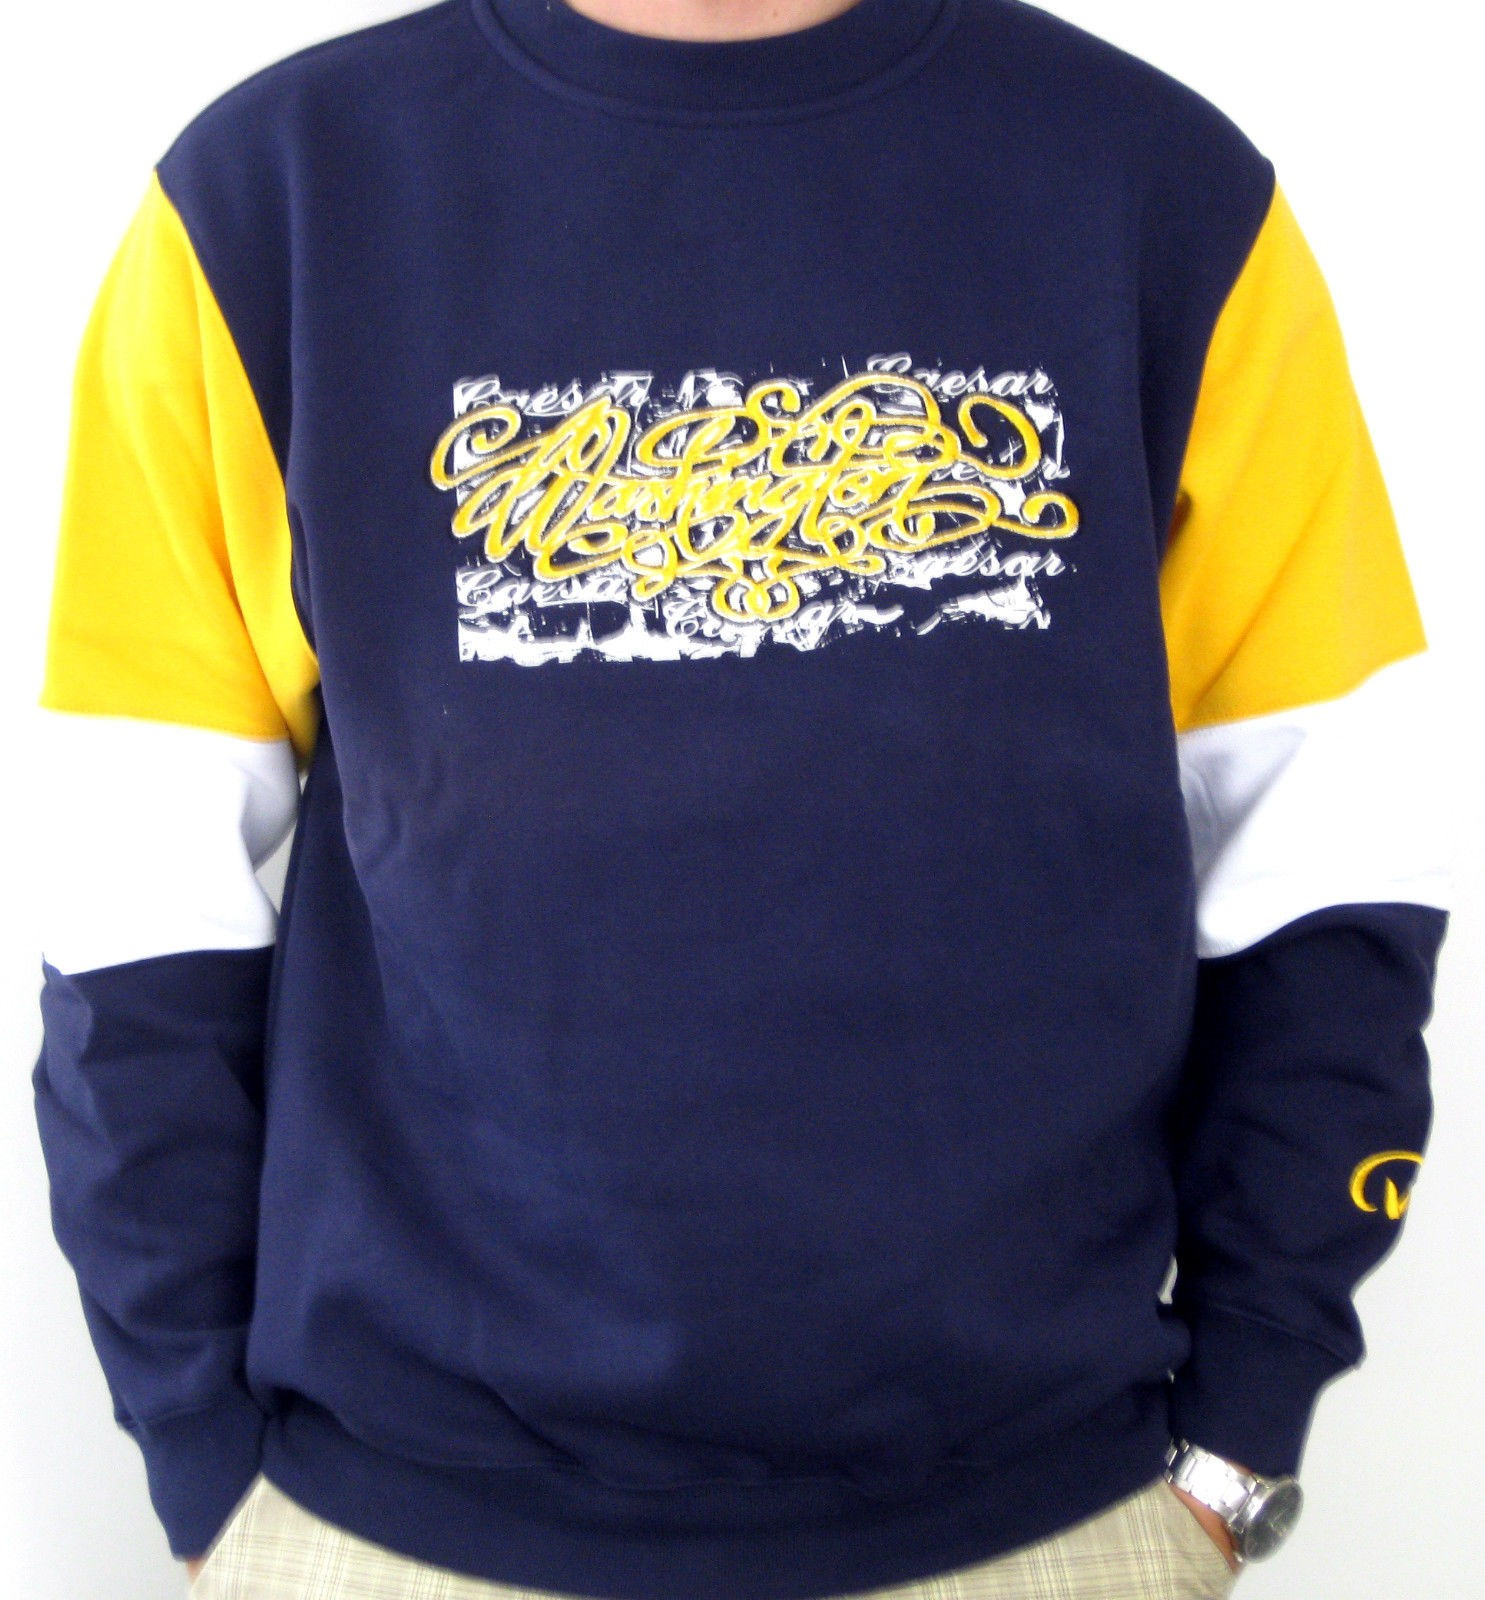 Caesar Washington Jr. Premium Sweater Skaterwear Sweatshirt navy/gelb S,M,L